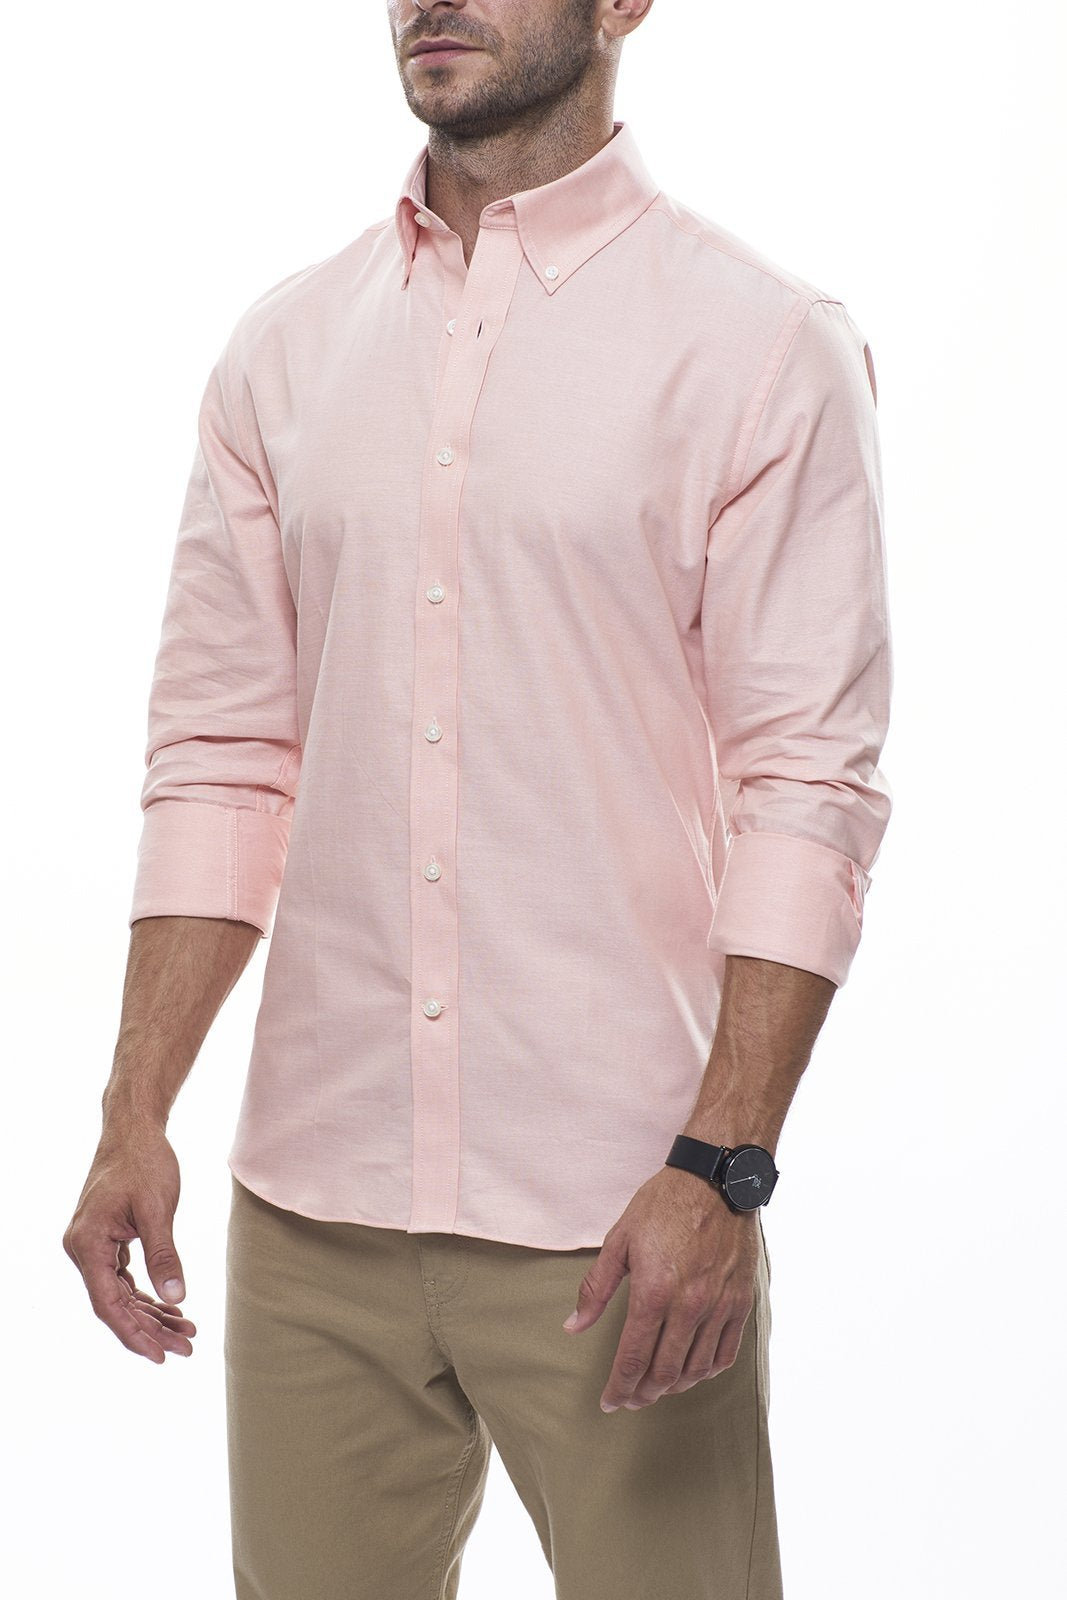 Lightweight Oxford in Orange: Button-Down Collar, Long Sleeve